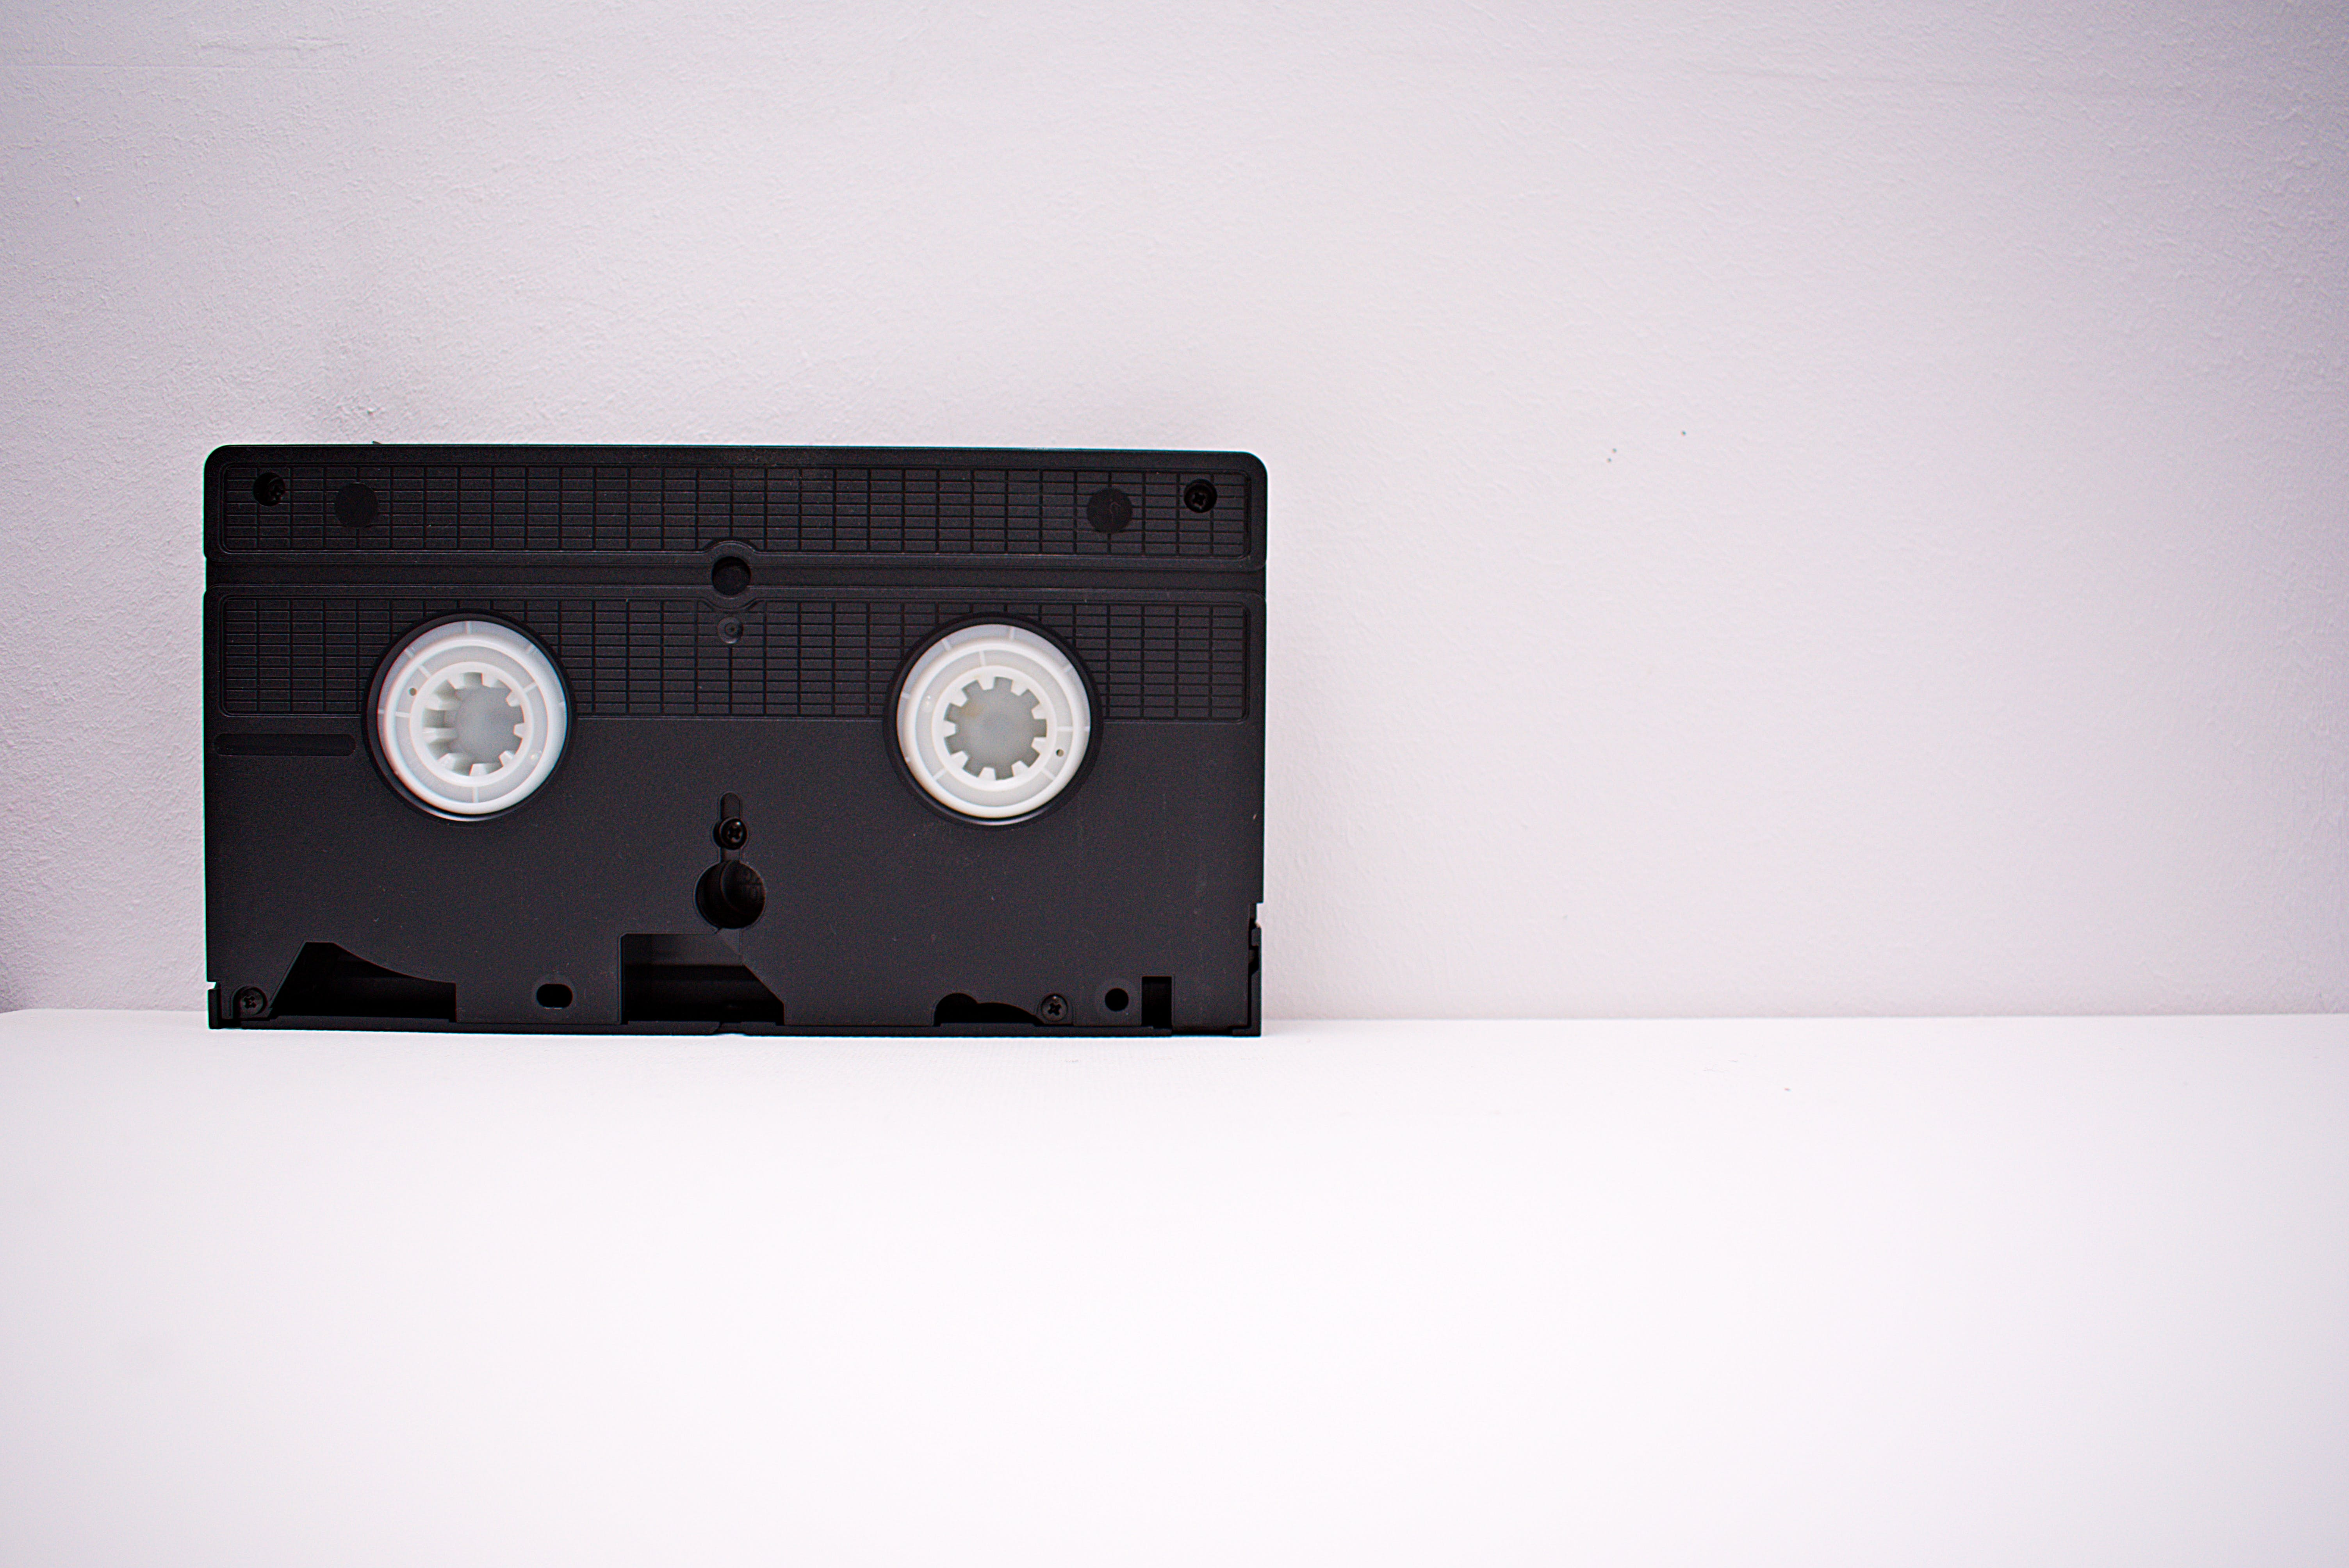 Black And White Vhs Tape On White Wooden Surface